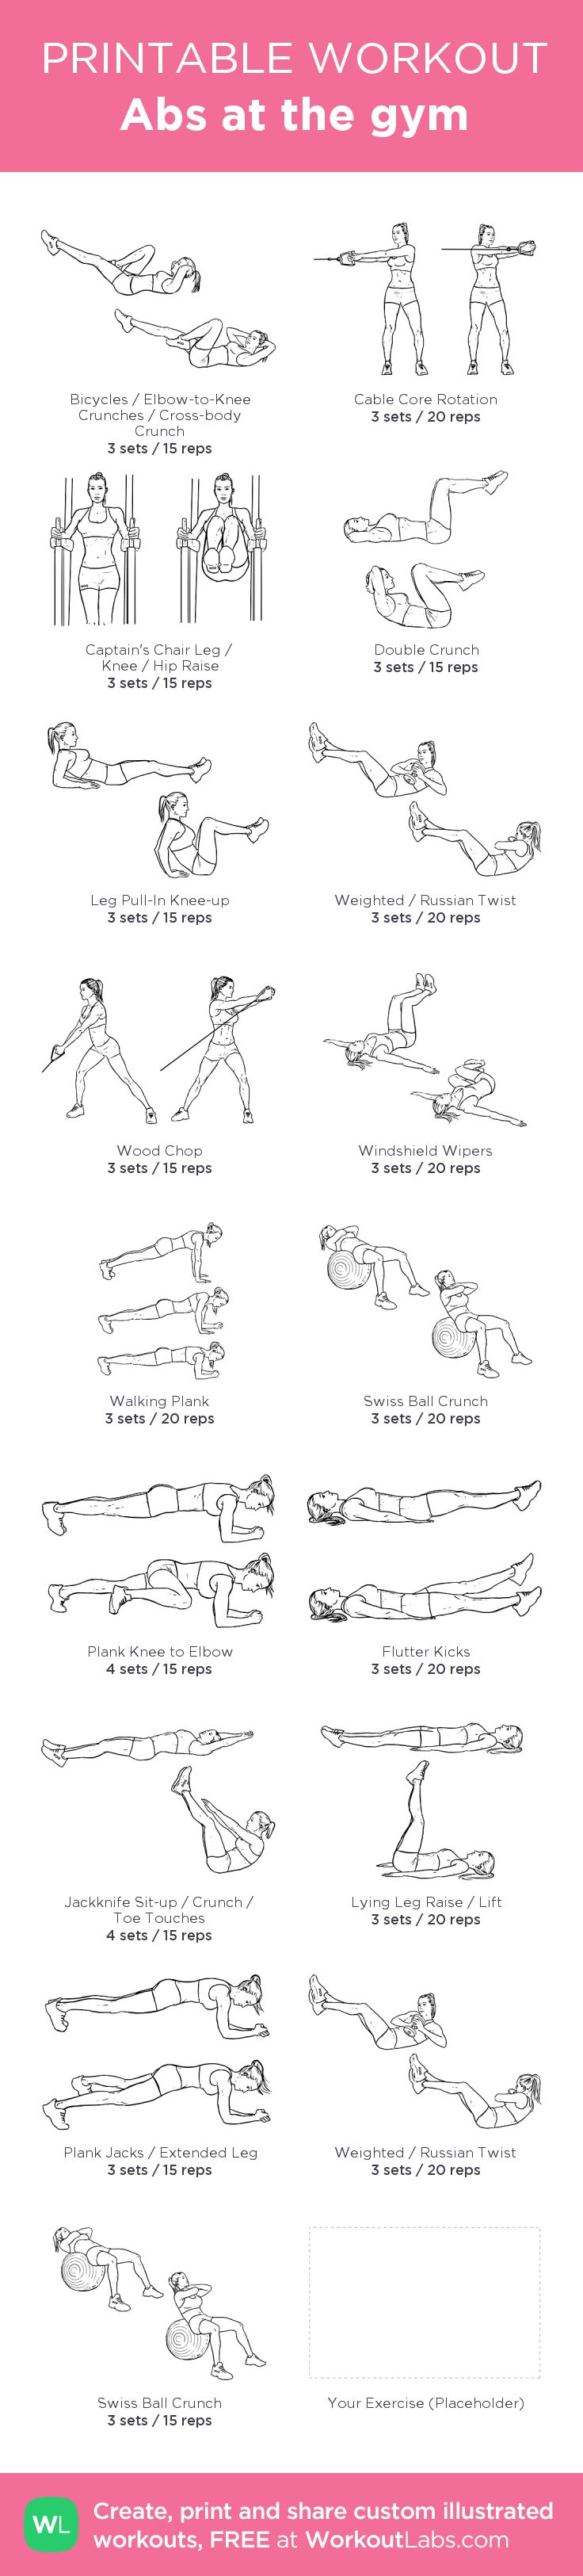 Abs at the gym: my visual workout created at WorkoutLabs.com • Click through to customize and download as a FREE PDF! #customworkout